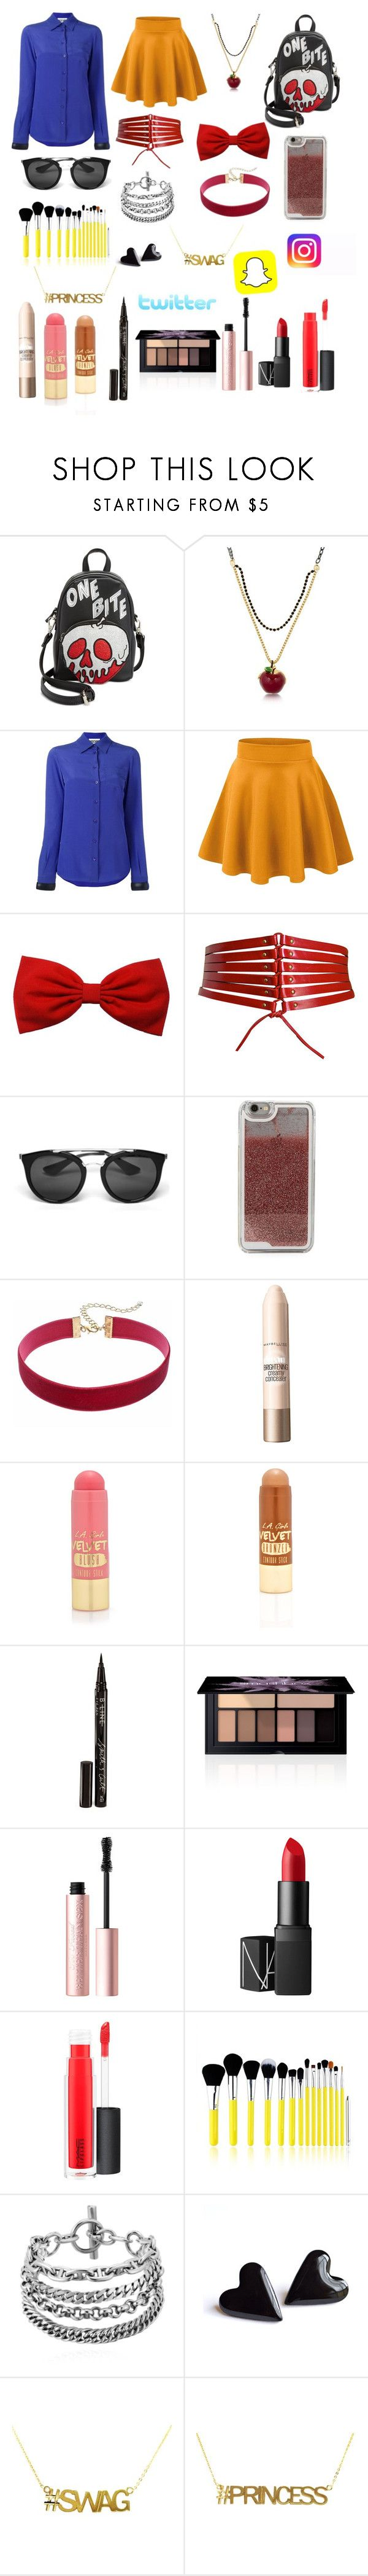 """""""Snow White the Social Media Queen"""" by lillyquest7 ❤ liked on Polyvore featuring Danielle Nicole, Disney, Moschino, Alaïa, Prada, LMNT, Maybelline, L.A. Girl, Smith & Cult and Smashbox"""